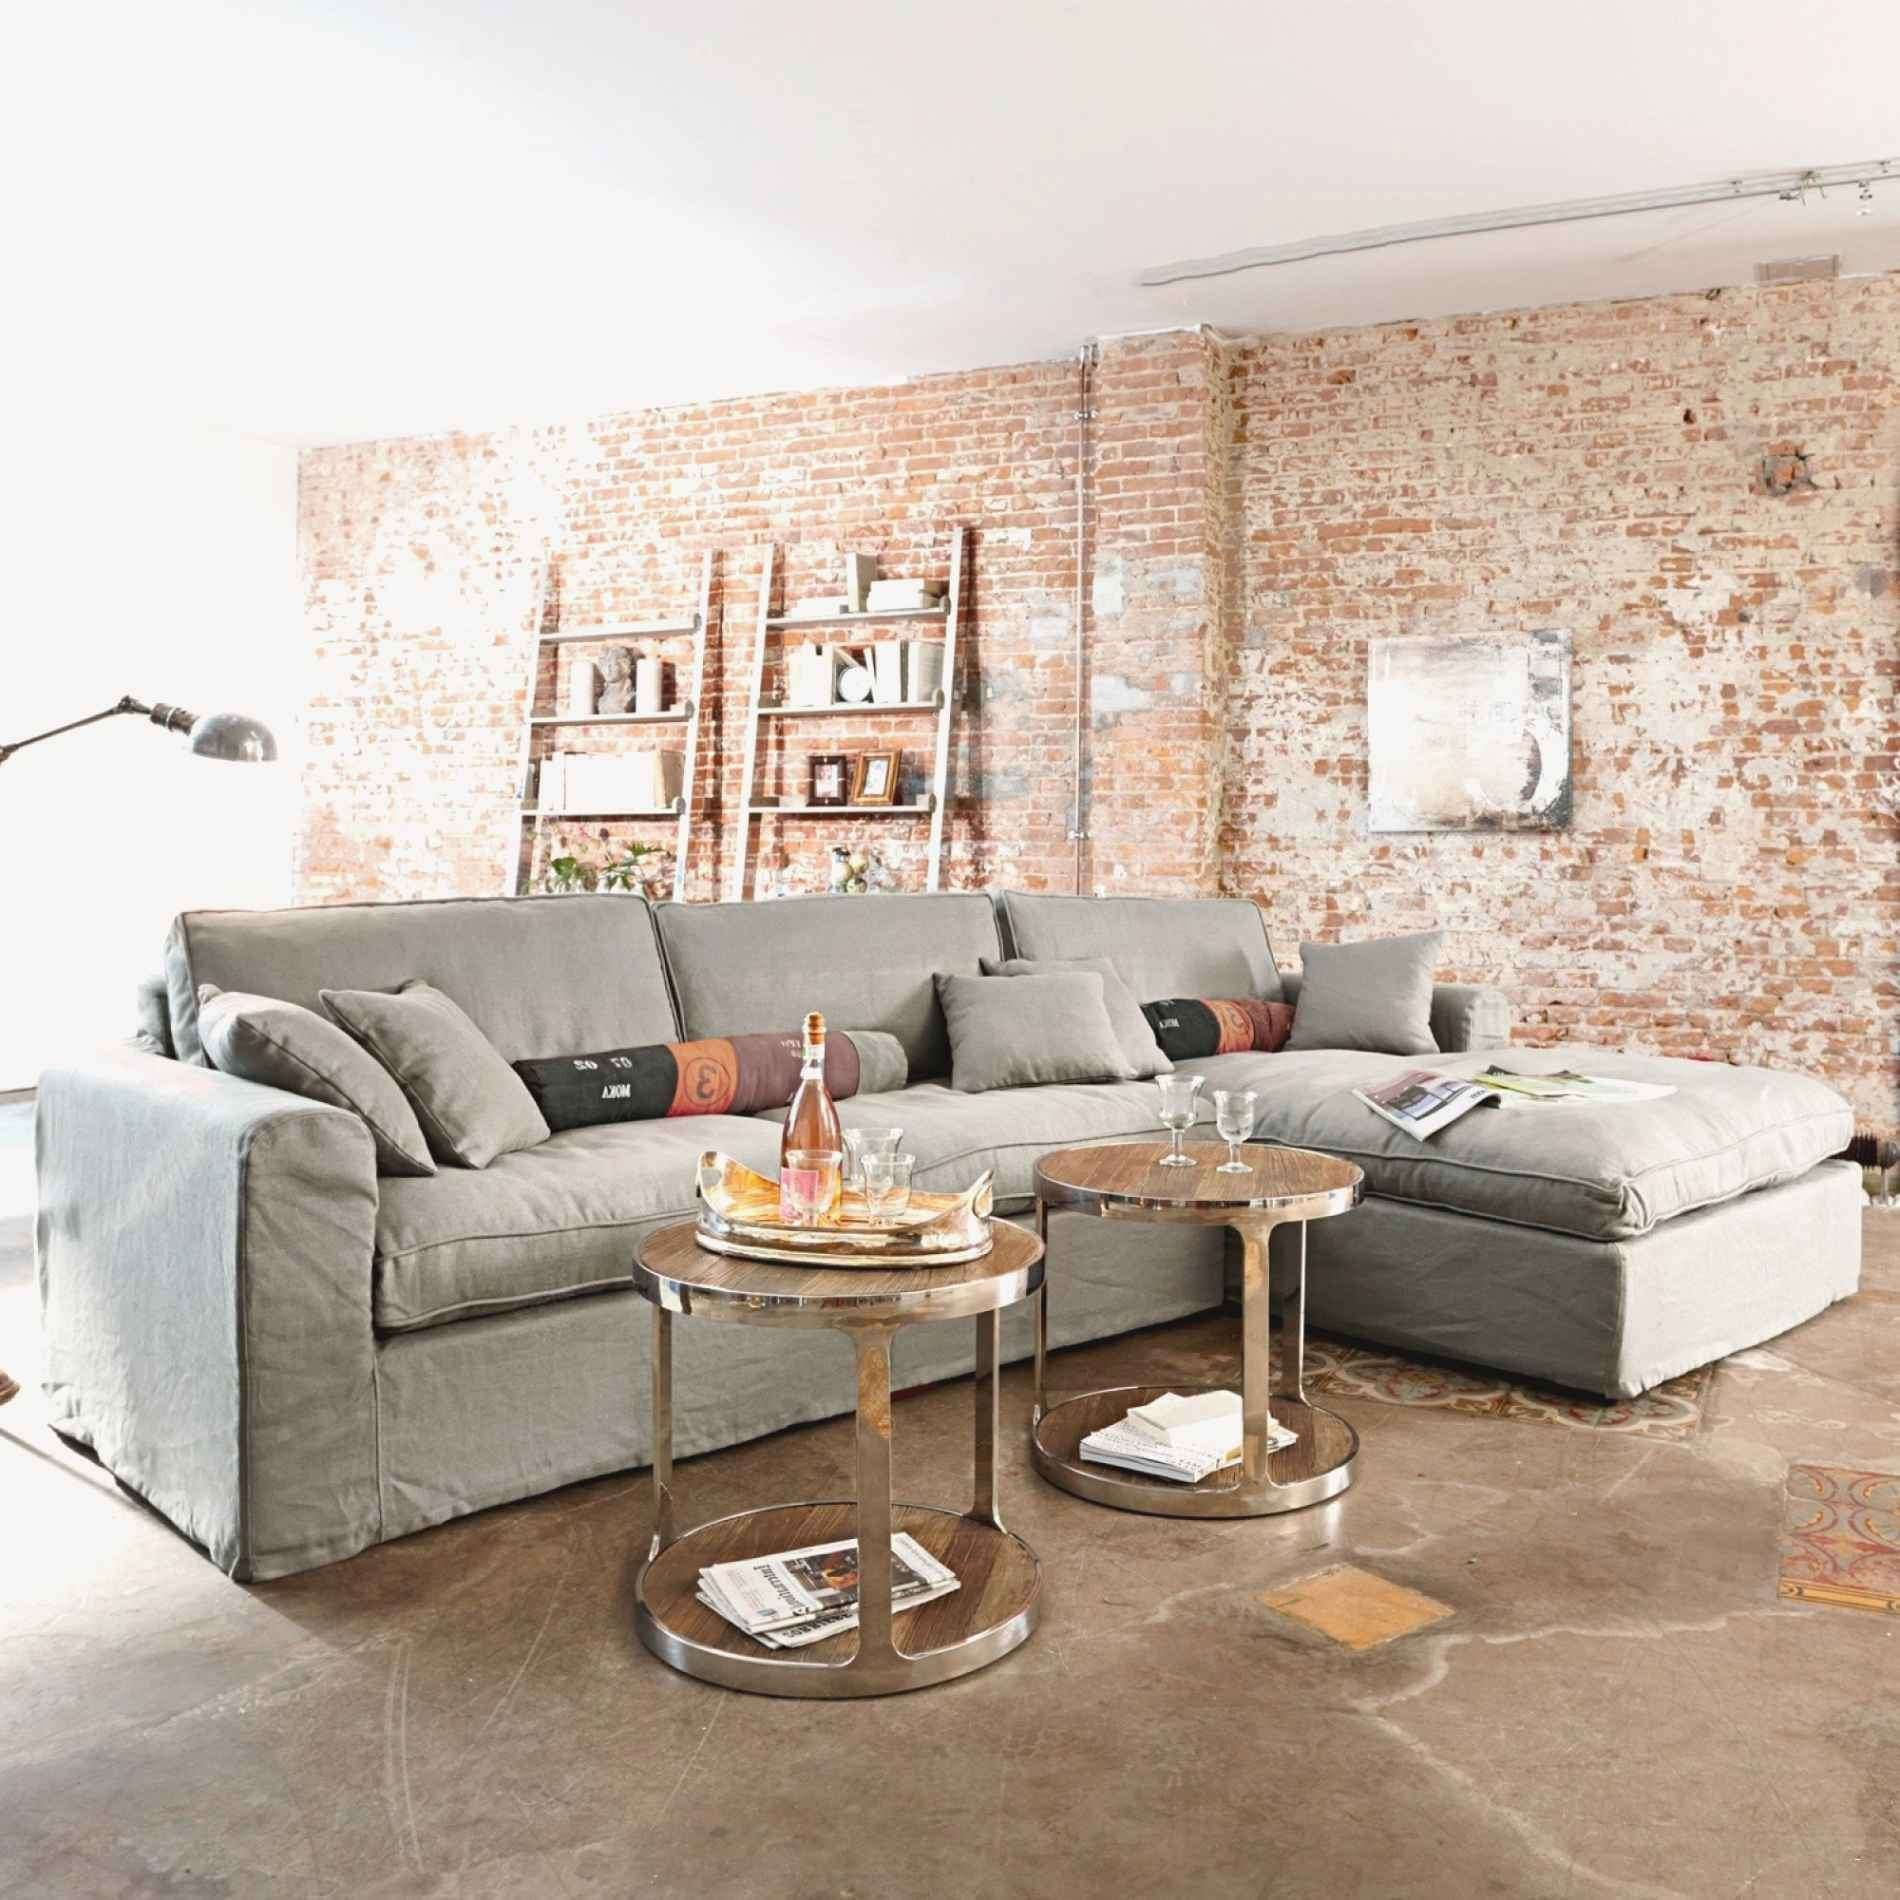 Mannmobilia Mann Mobilia Teppiche 45 Beste Couch Billig Kaufen Check More At Https Theprojectmodern Com Das Beste Mann Mobilia In 2020 Coffee Table Home Decor Home